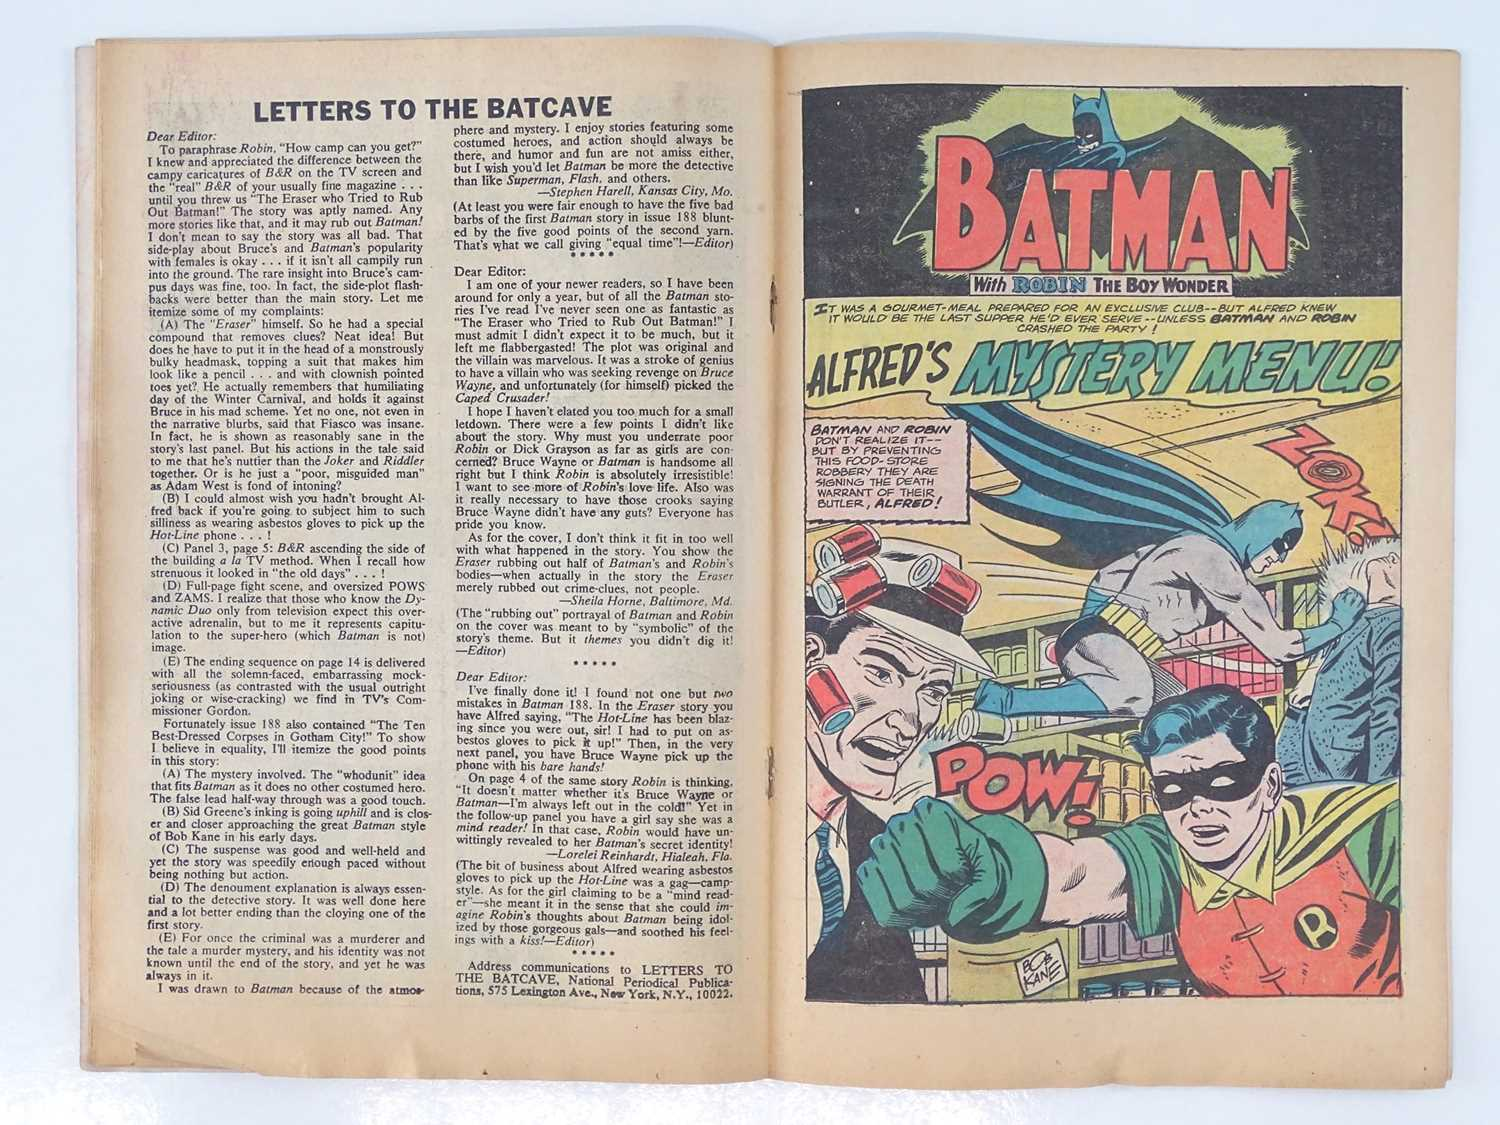 BATMAN #191 - (1967 - DC - UK Cover Price) - Joker and Penguin appearances in this BAT-AUCTION issue - Image 5 of 9